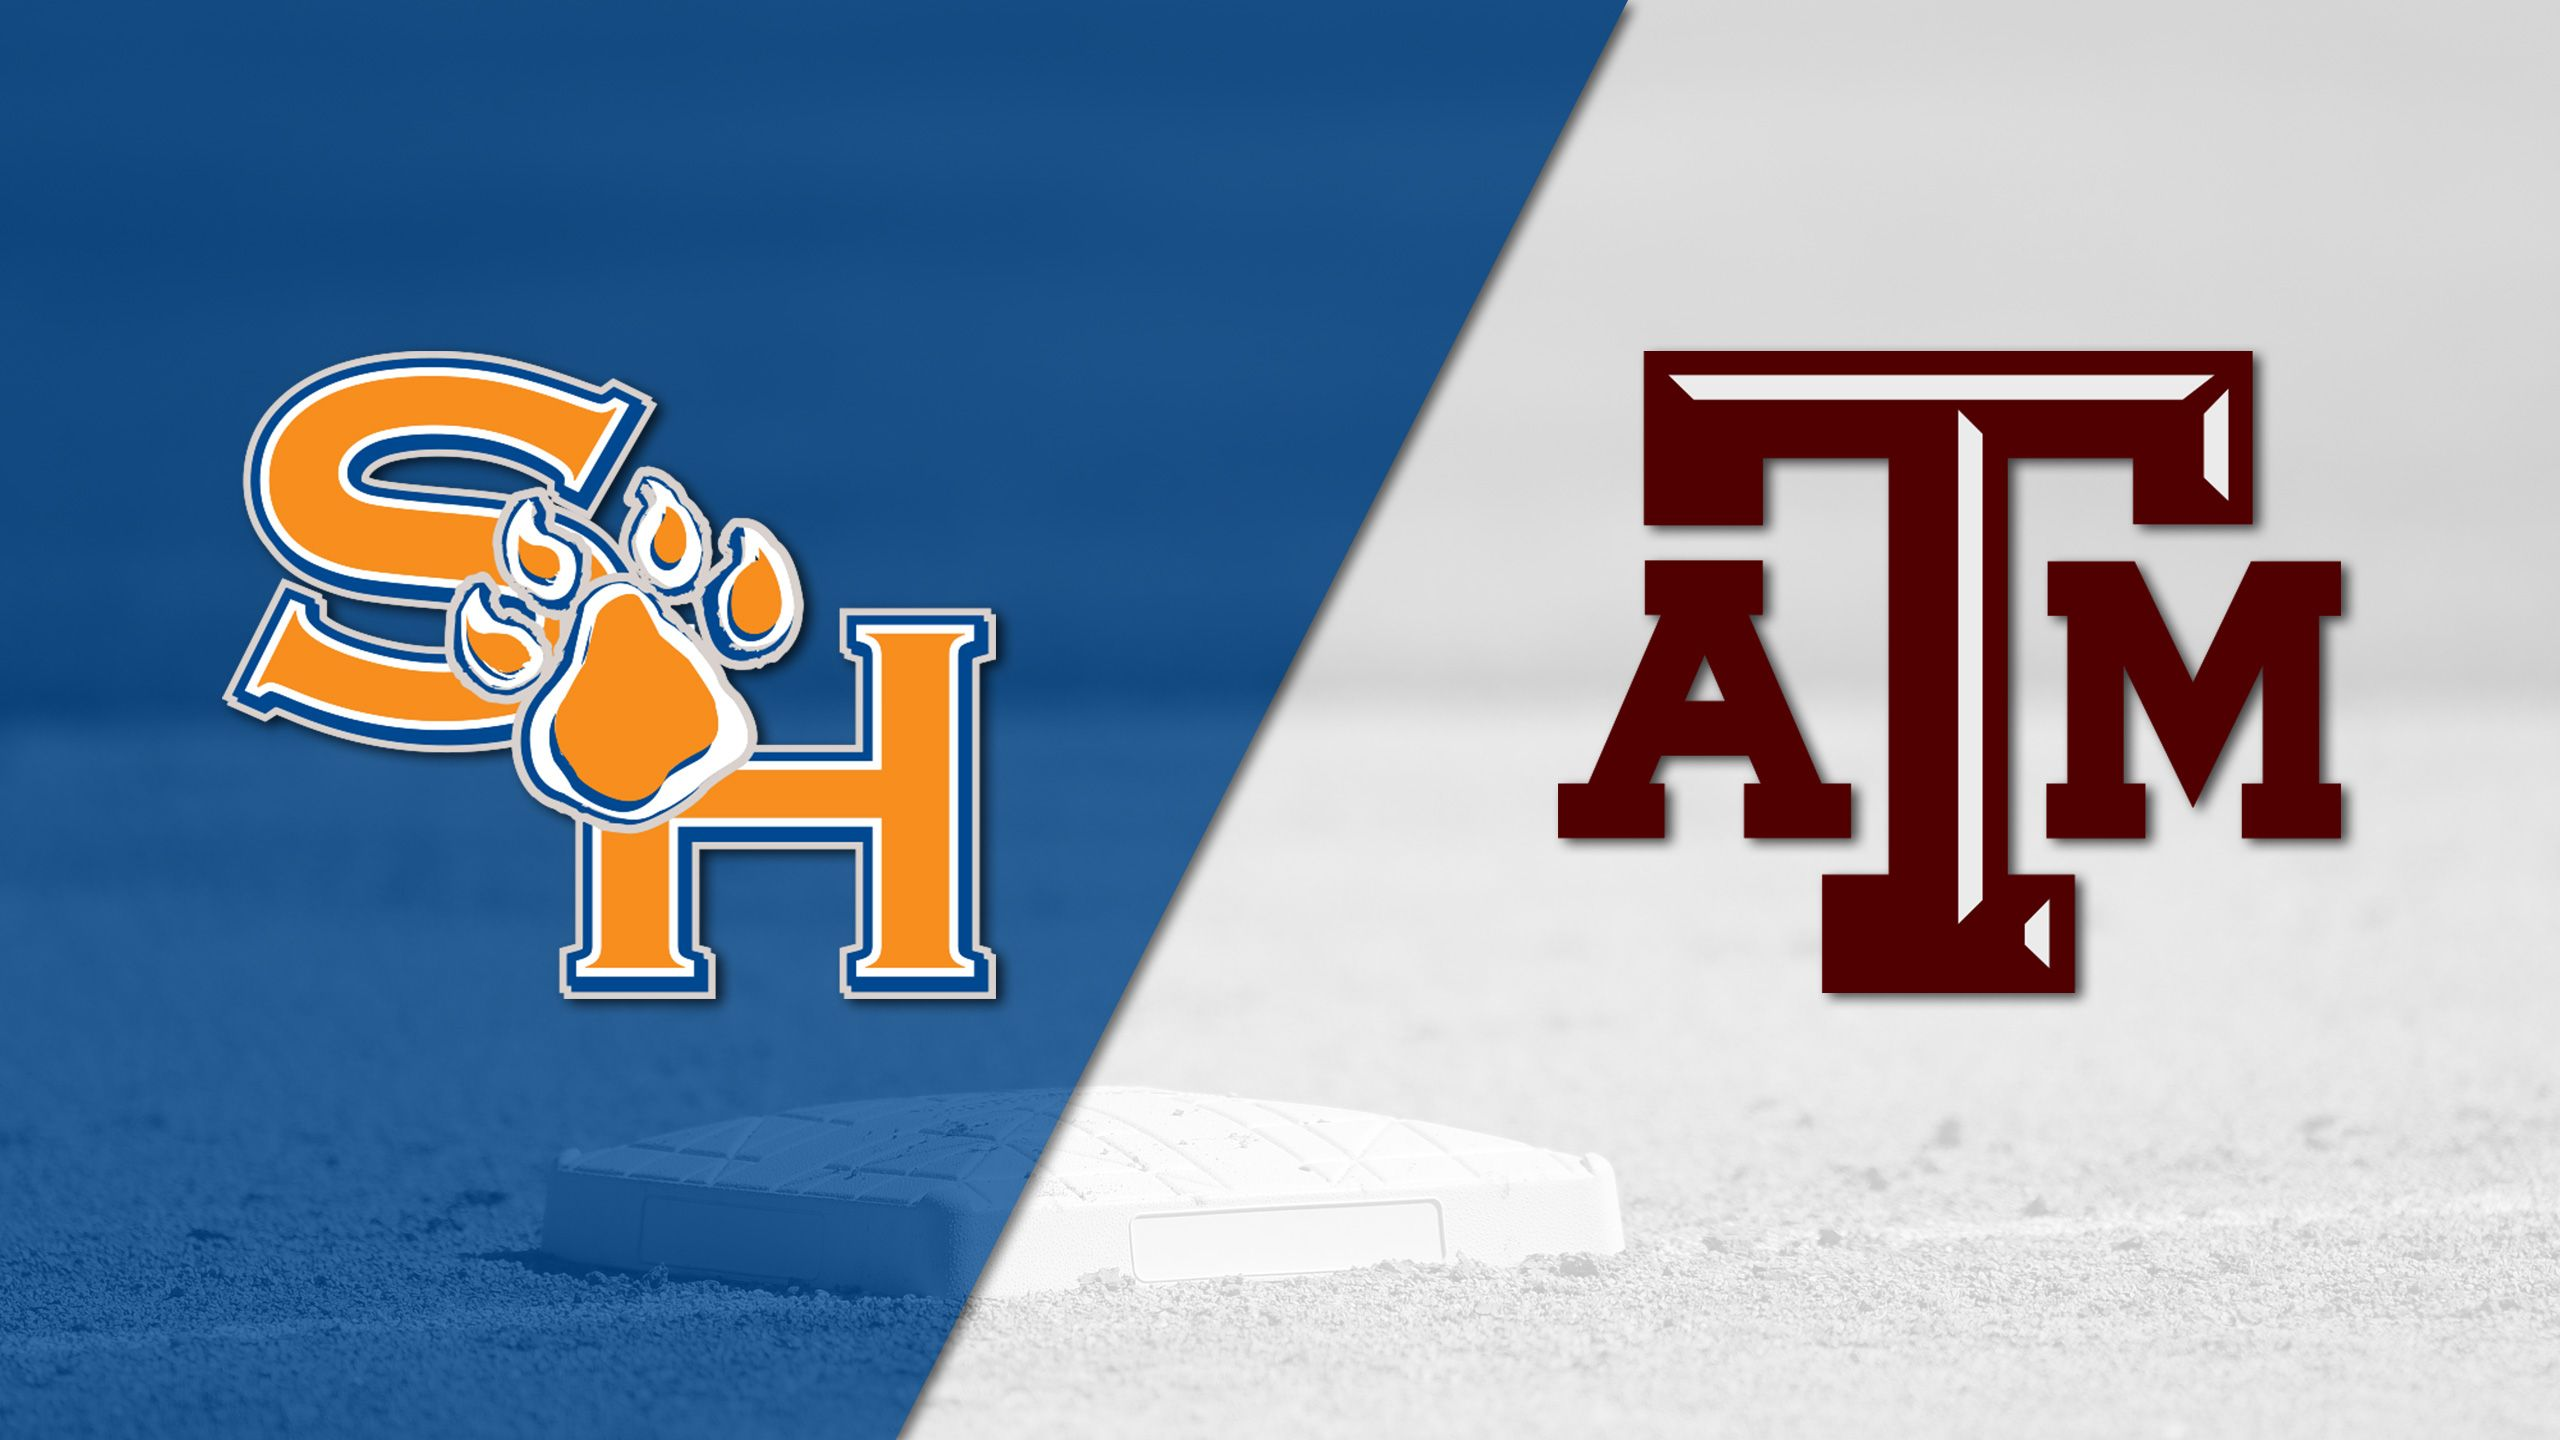 Sam Houston State vs. #22 Texas A&M (Baseball)